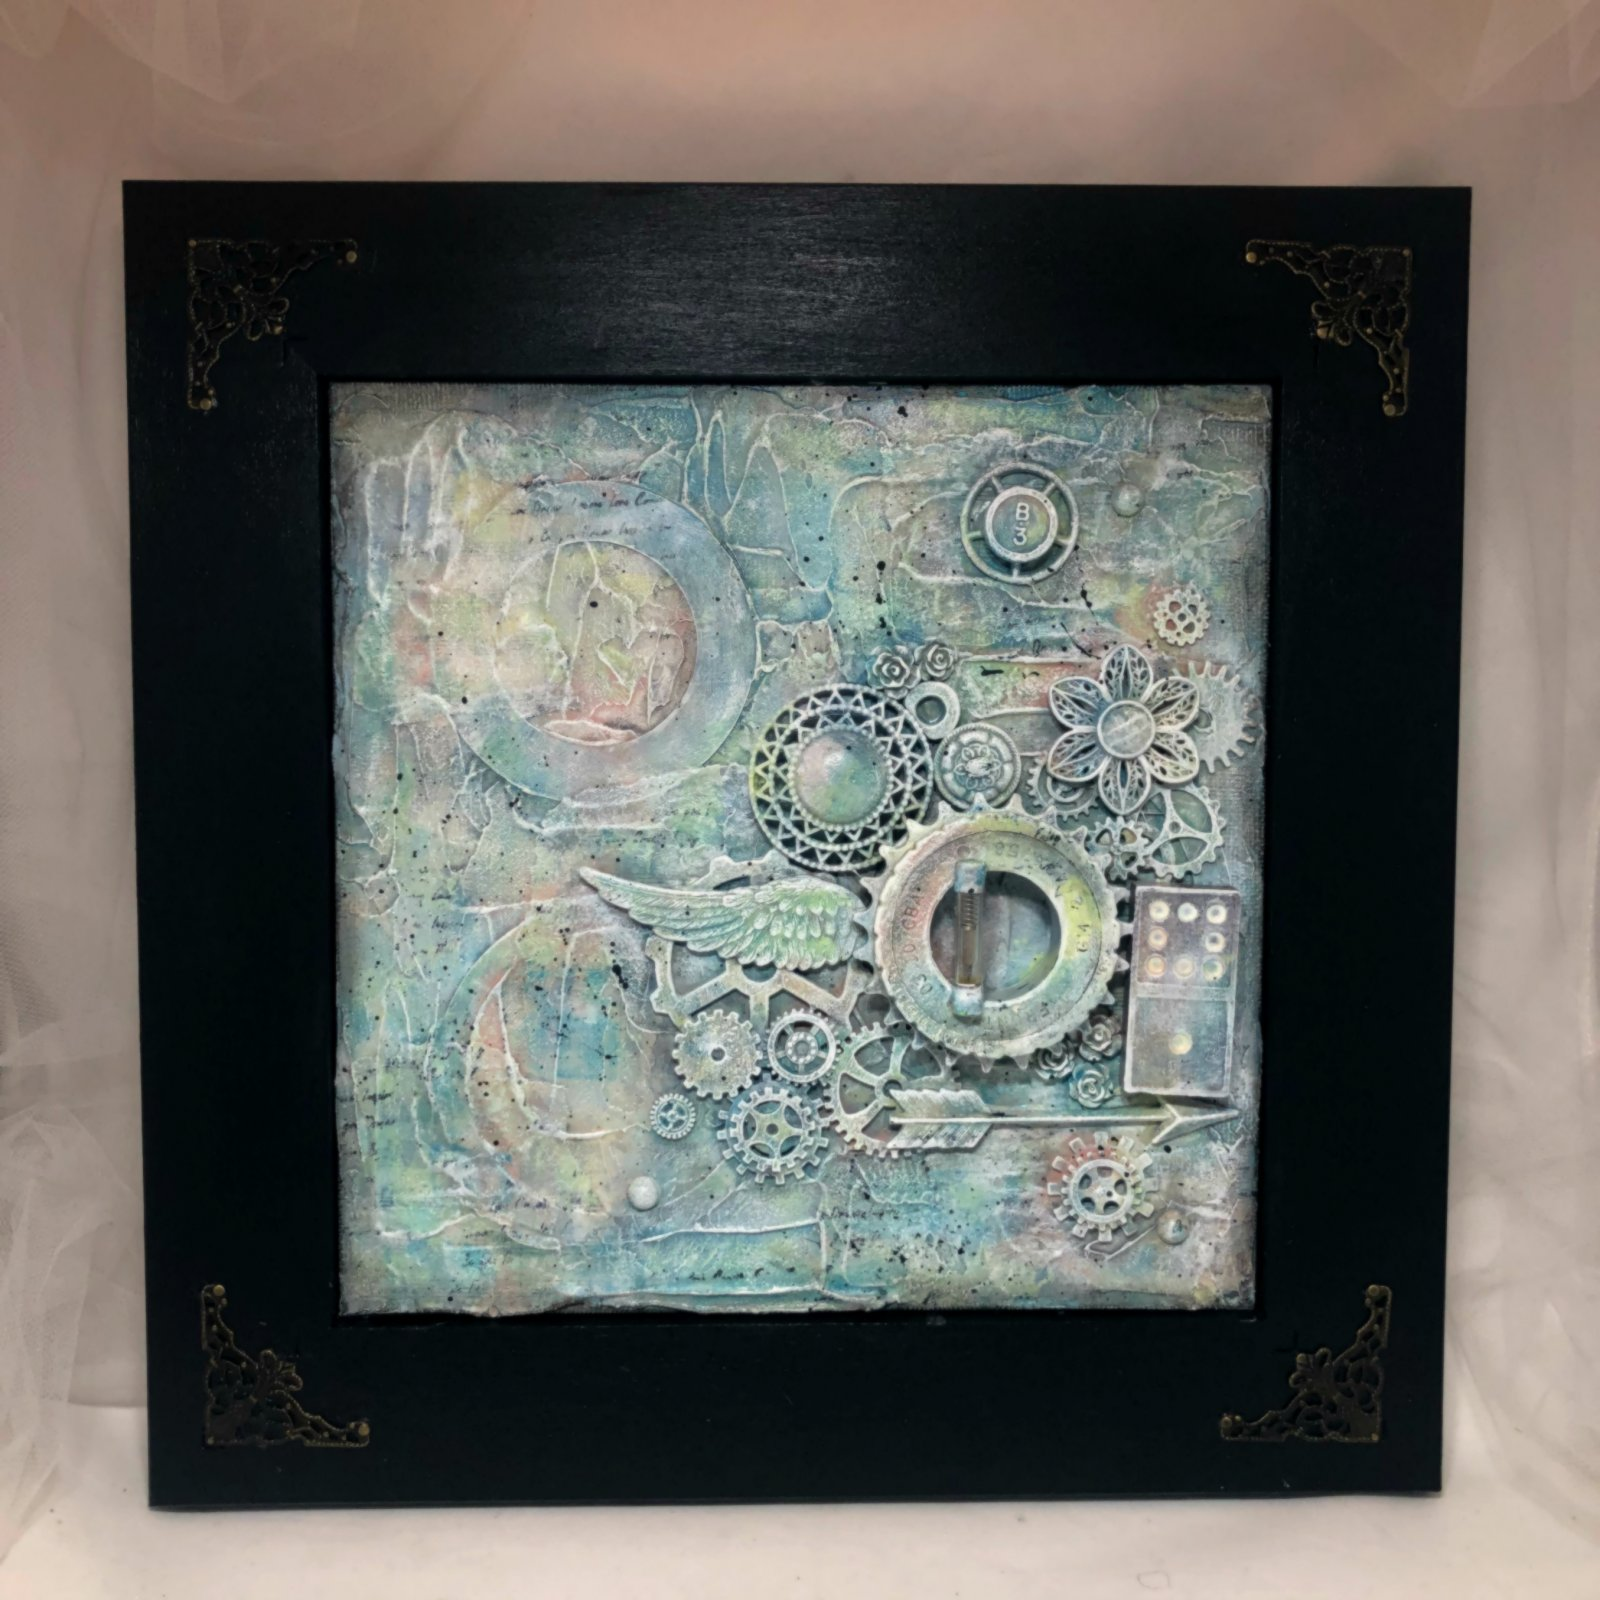 Inspired by Nature framed 8 x 8 canvas